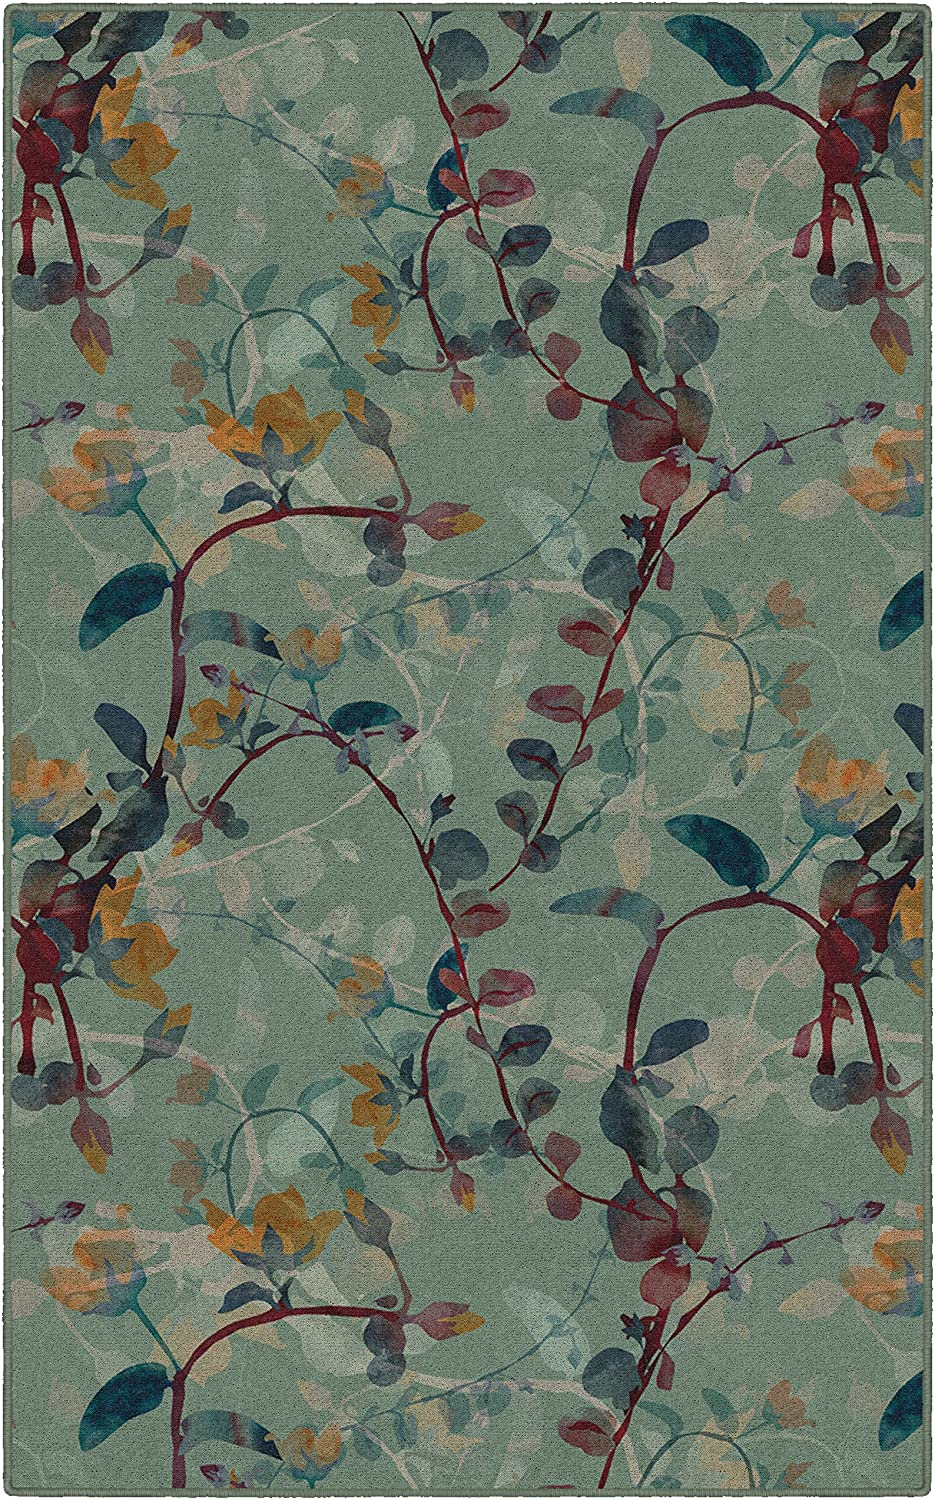 lowest price Brumlow Mills Catalina Fall Green Floral Area Decor Rug Home for Super sale period limited